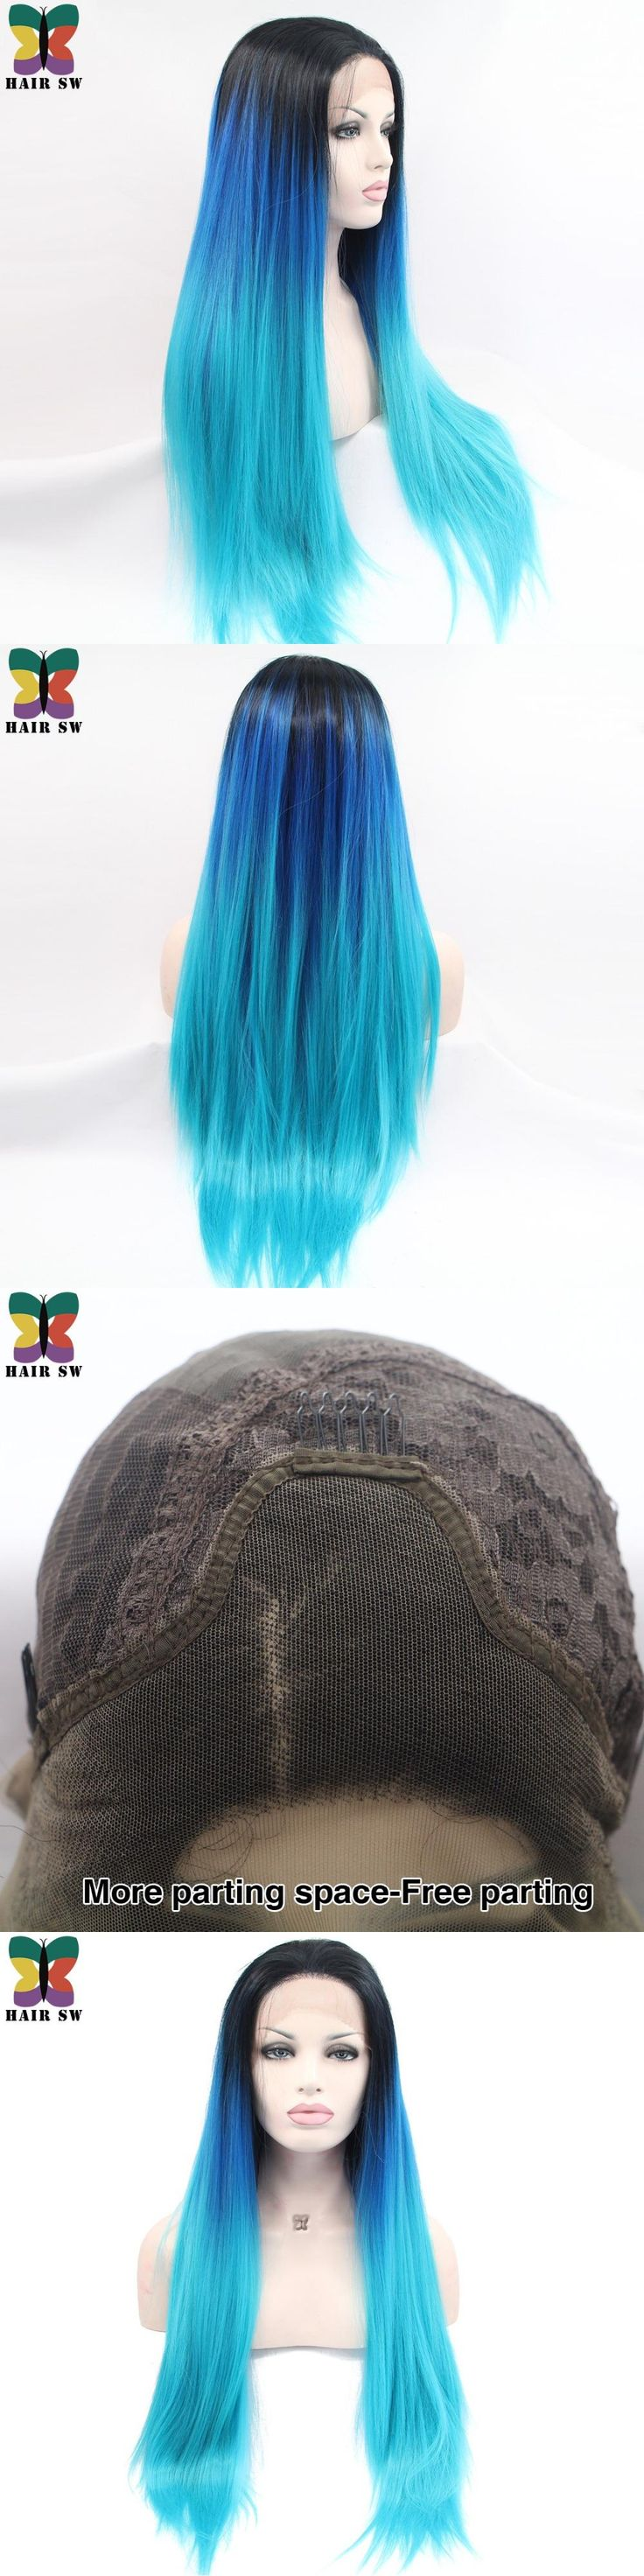 HAIR SW Long Straight Synthetic Lace Front Wig Dark Blue to Light Blue With Black Roots Half Hand Tied 3 Tones Ombre Cos Wigs